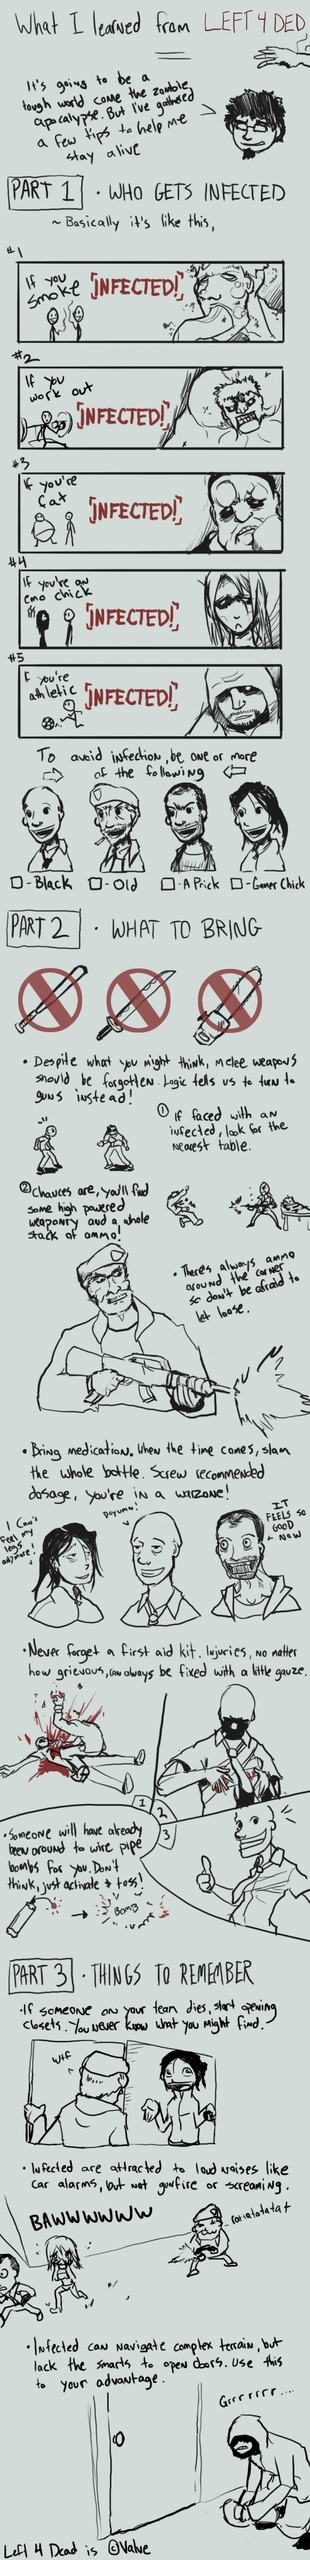 What Left For Dead has Taught me.